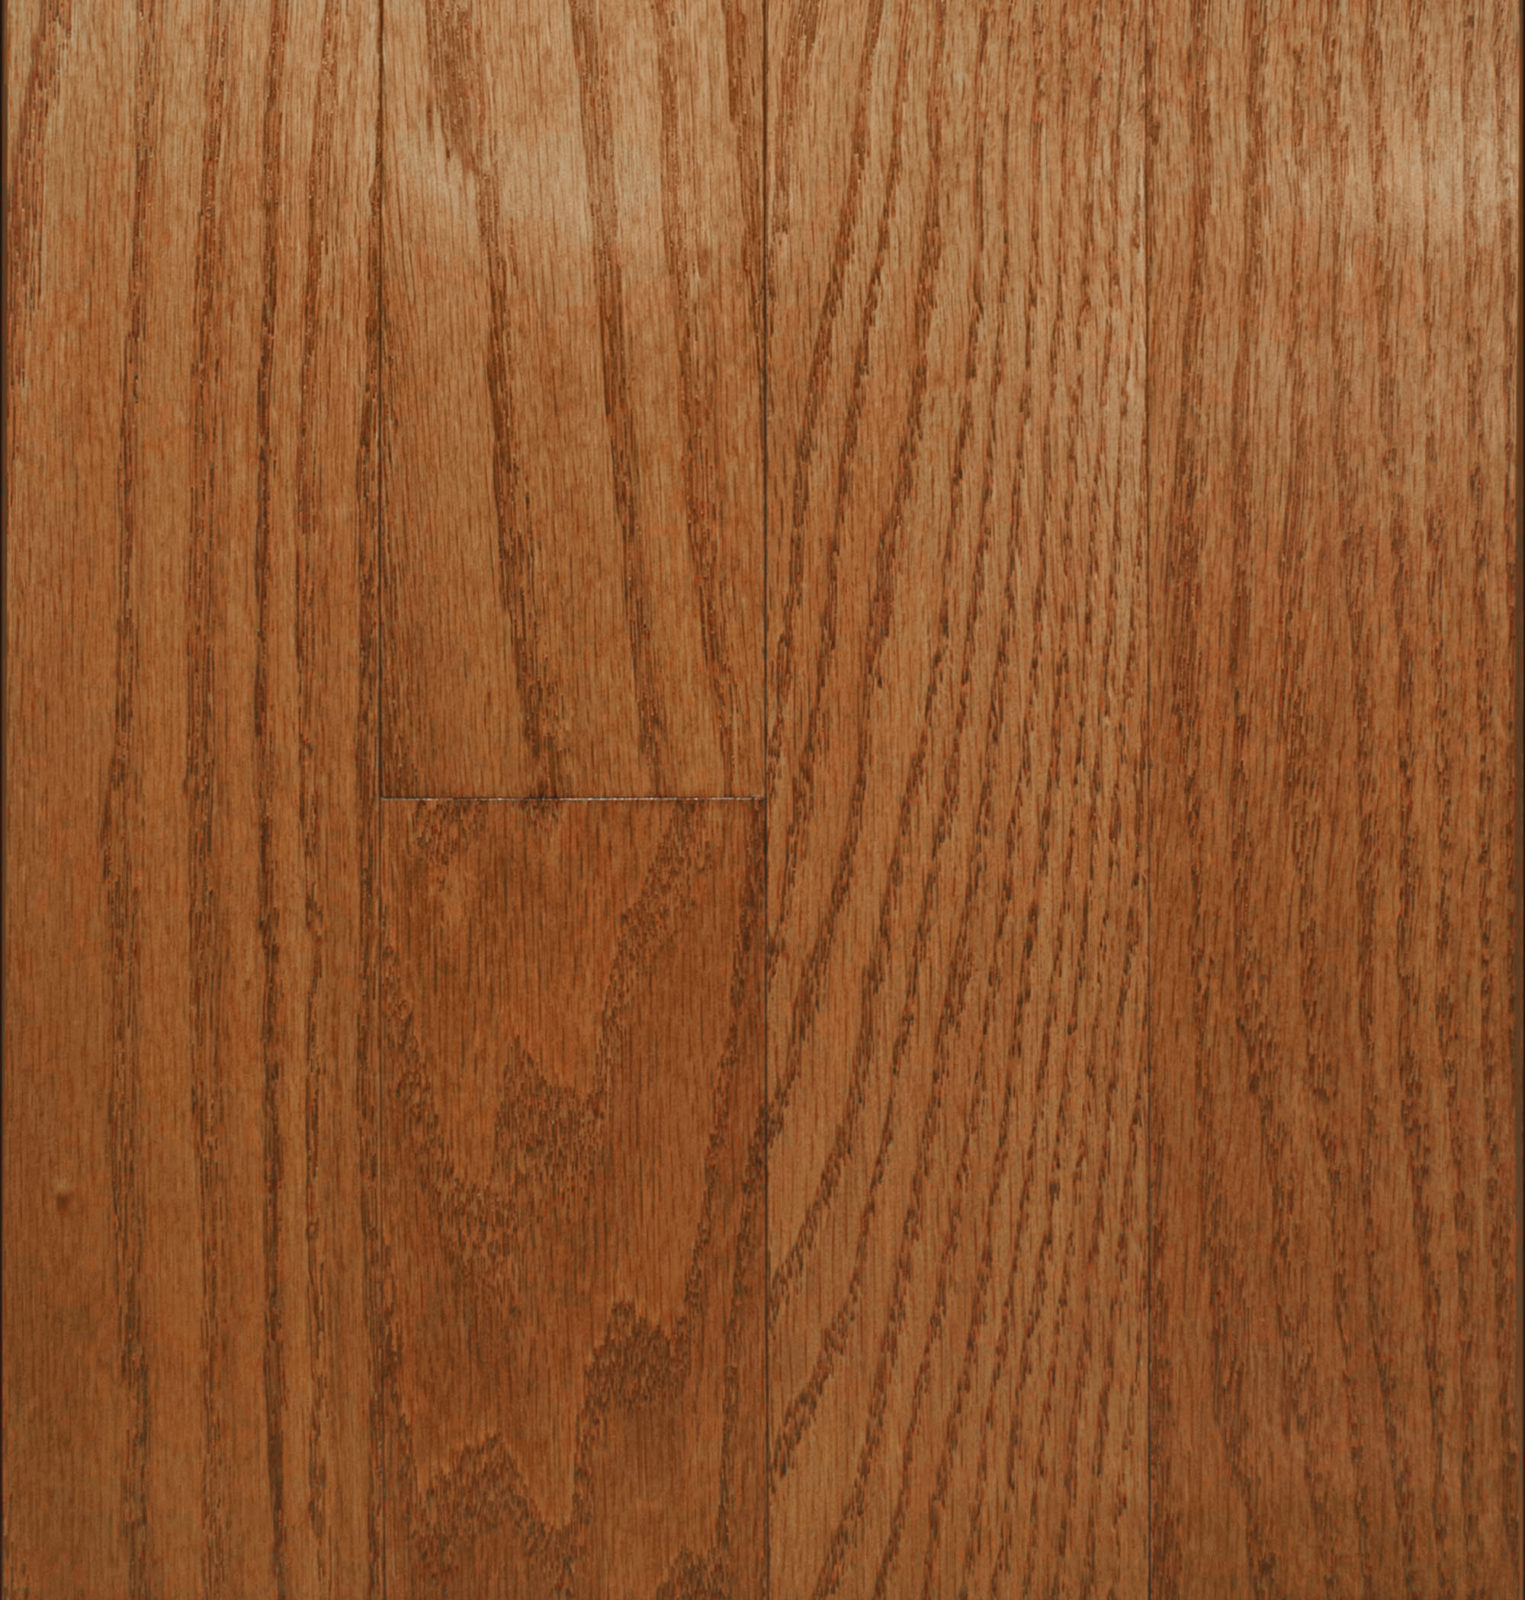 3 1 4 x 3 4 mohawk red oak winchester schillings for Red oak hardwood flooring